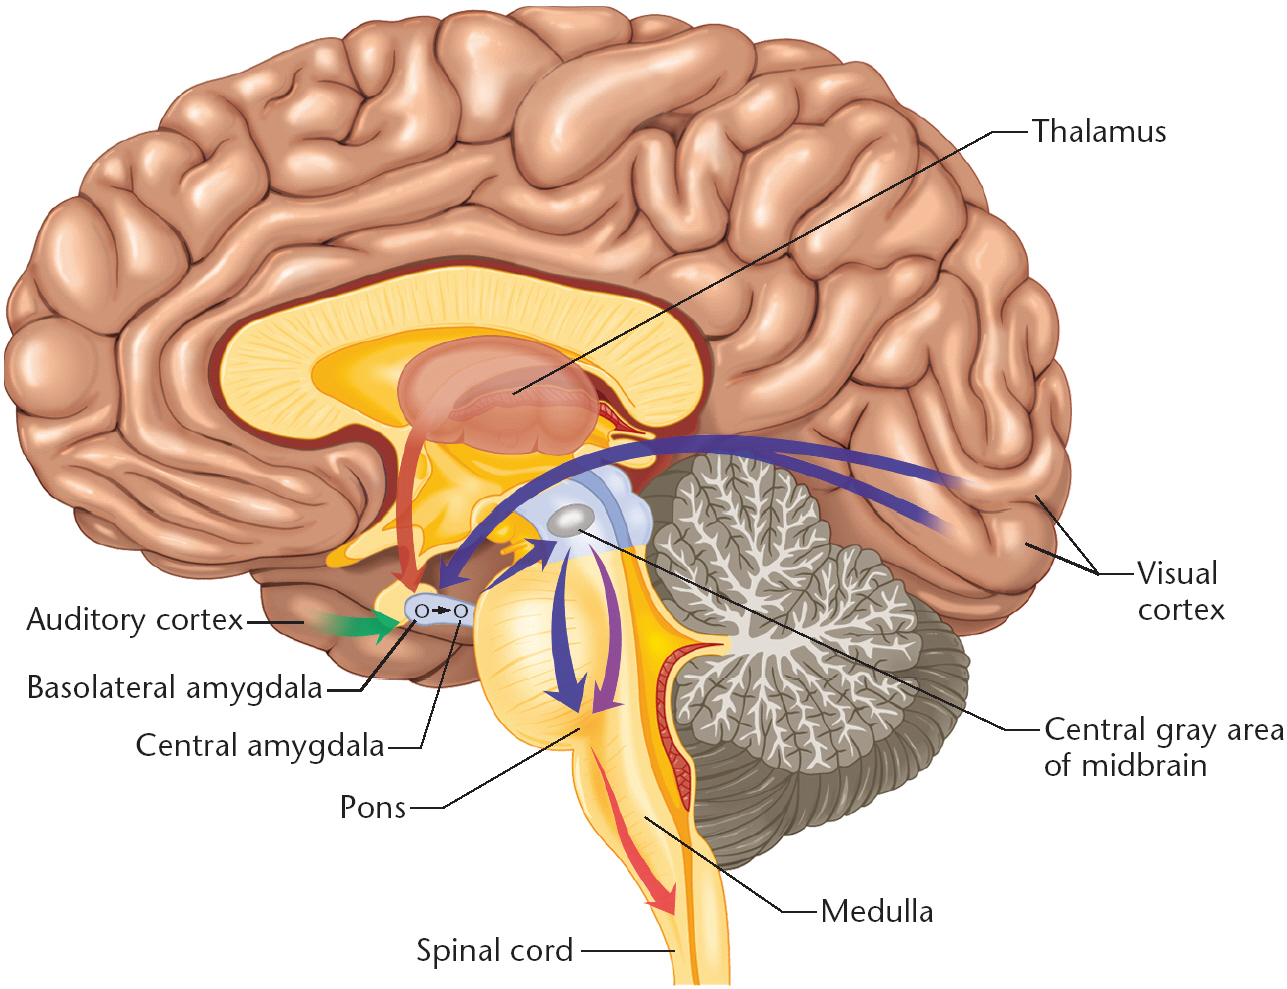 Nucleus Accumbens Brain Diagram Labeled - Electrical Drawing Wiring ...